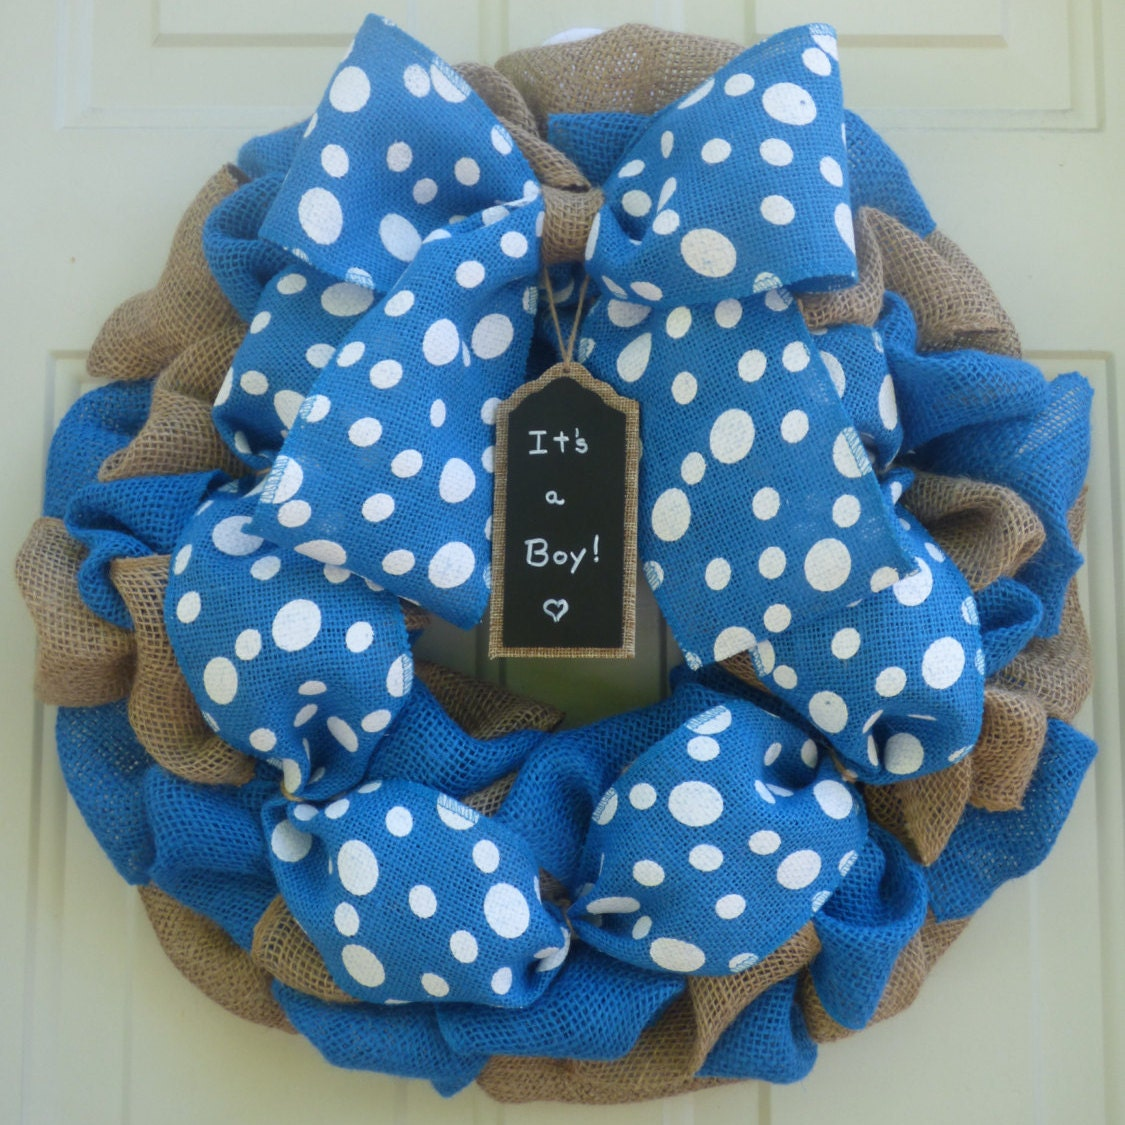 Baby boy shower decorations baby boy nusery by oneofakindwreath - Ideeen deco kamer baby boy ...